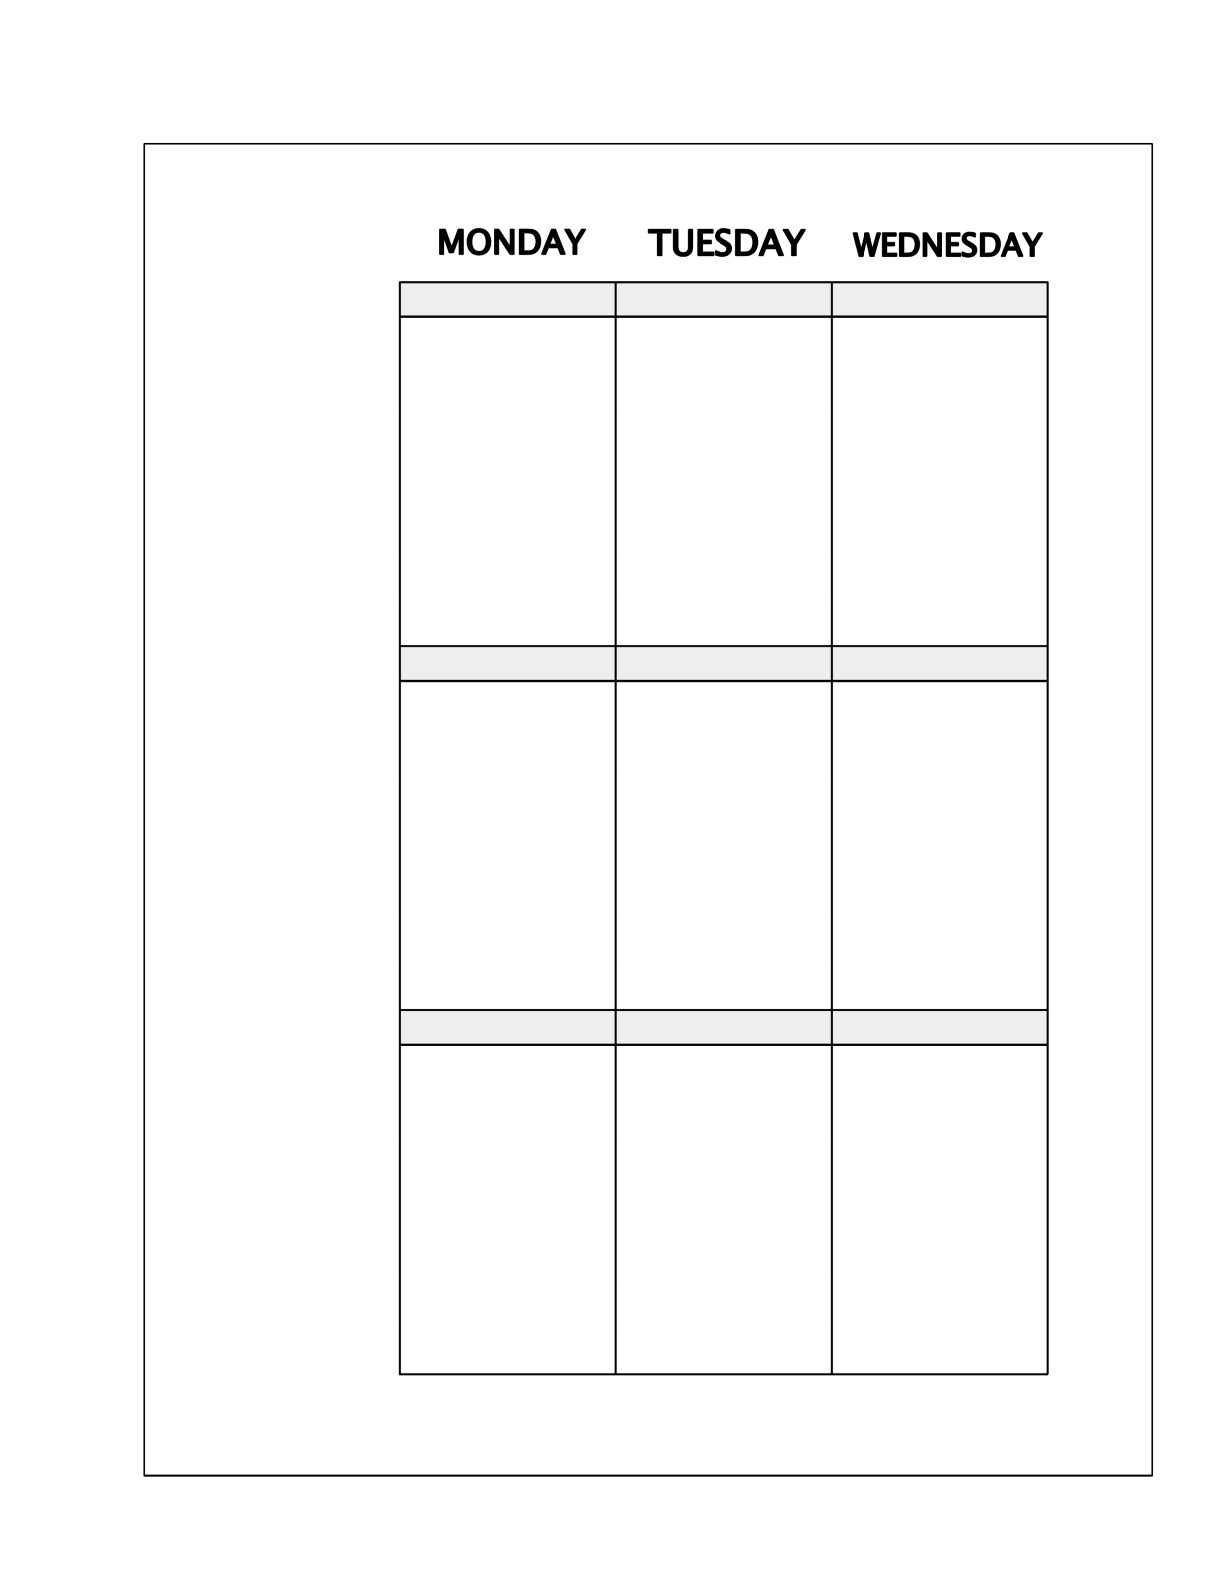 image regarding Free Mini Happy Planner Printable Inserts named Pretend Content Planner Inserts Free of charge Planner Printable